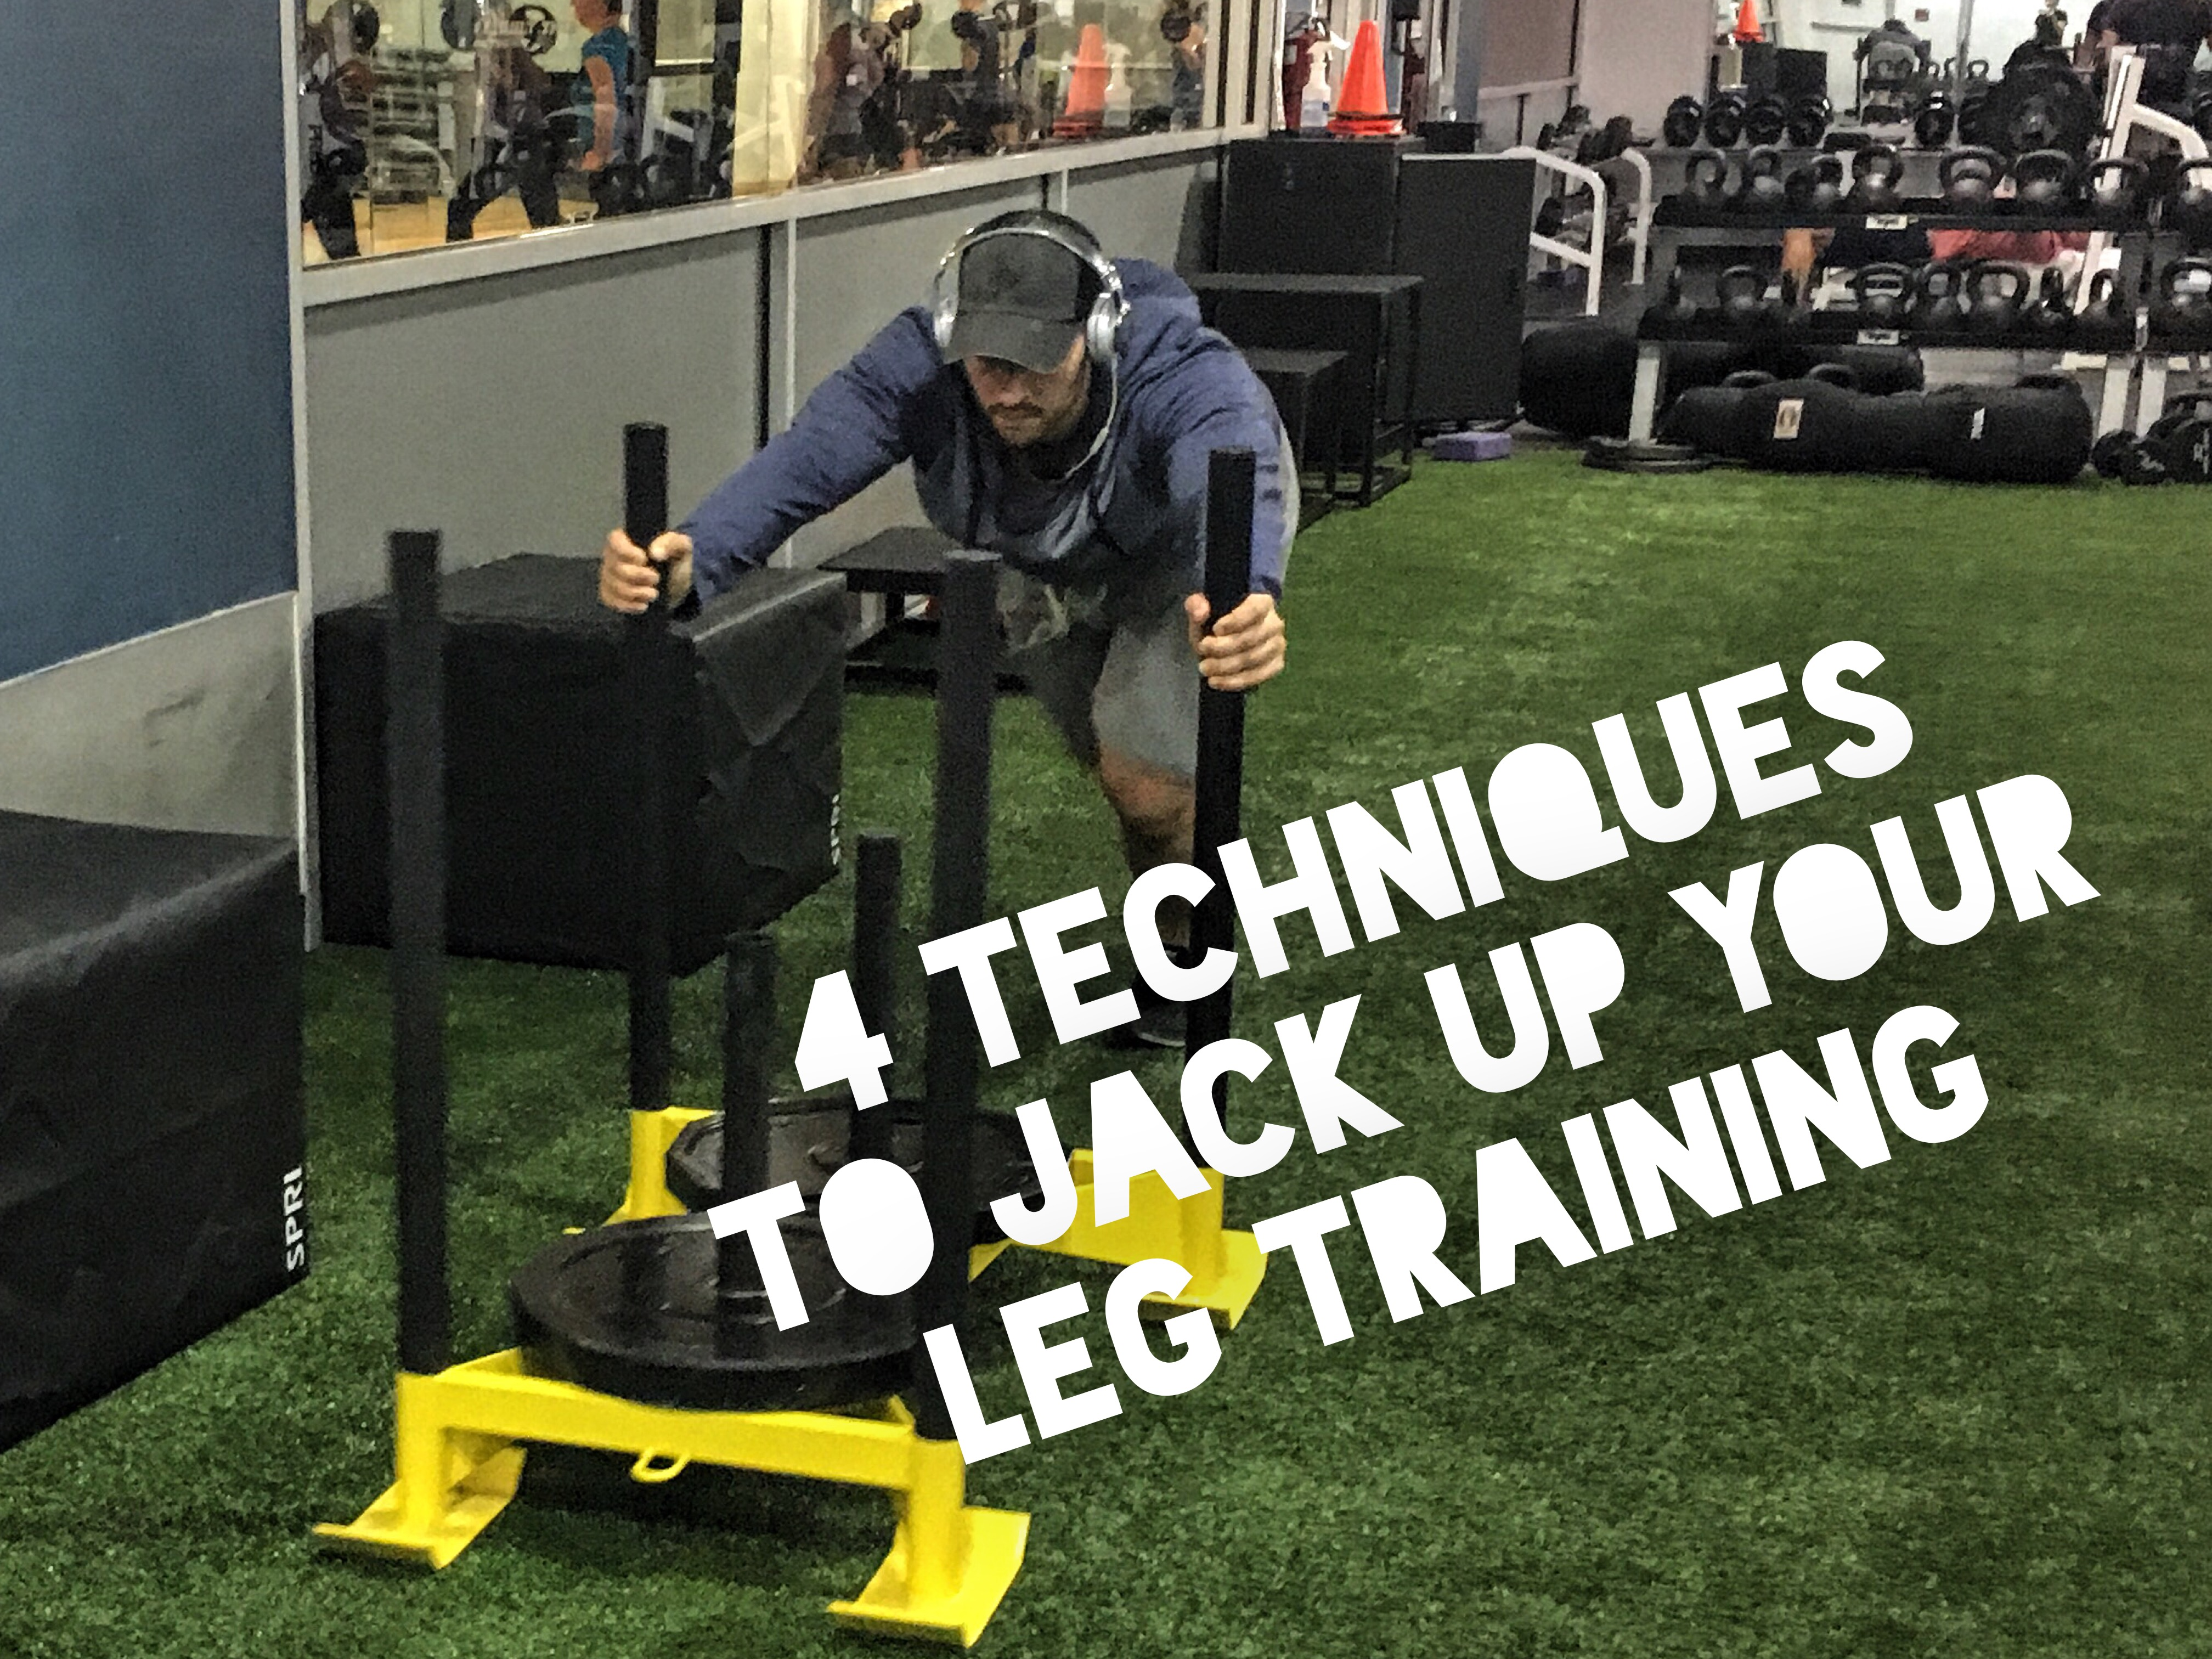 HOW TO JACK UP YOUR LEG TRAINING